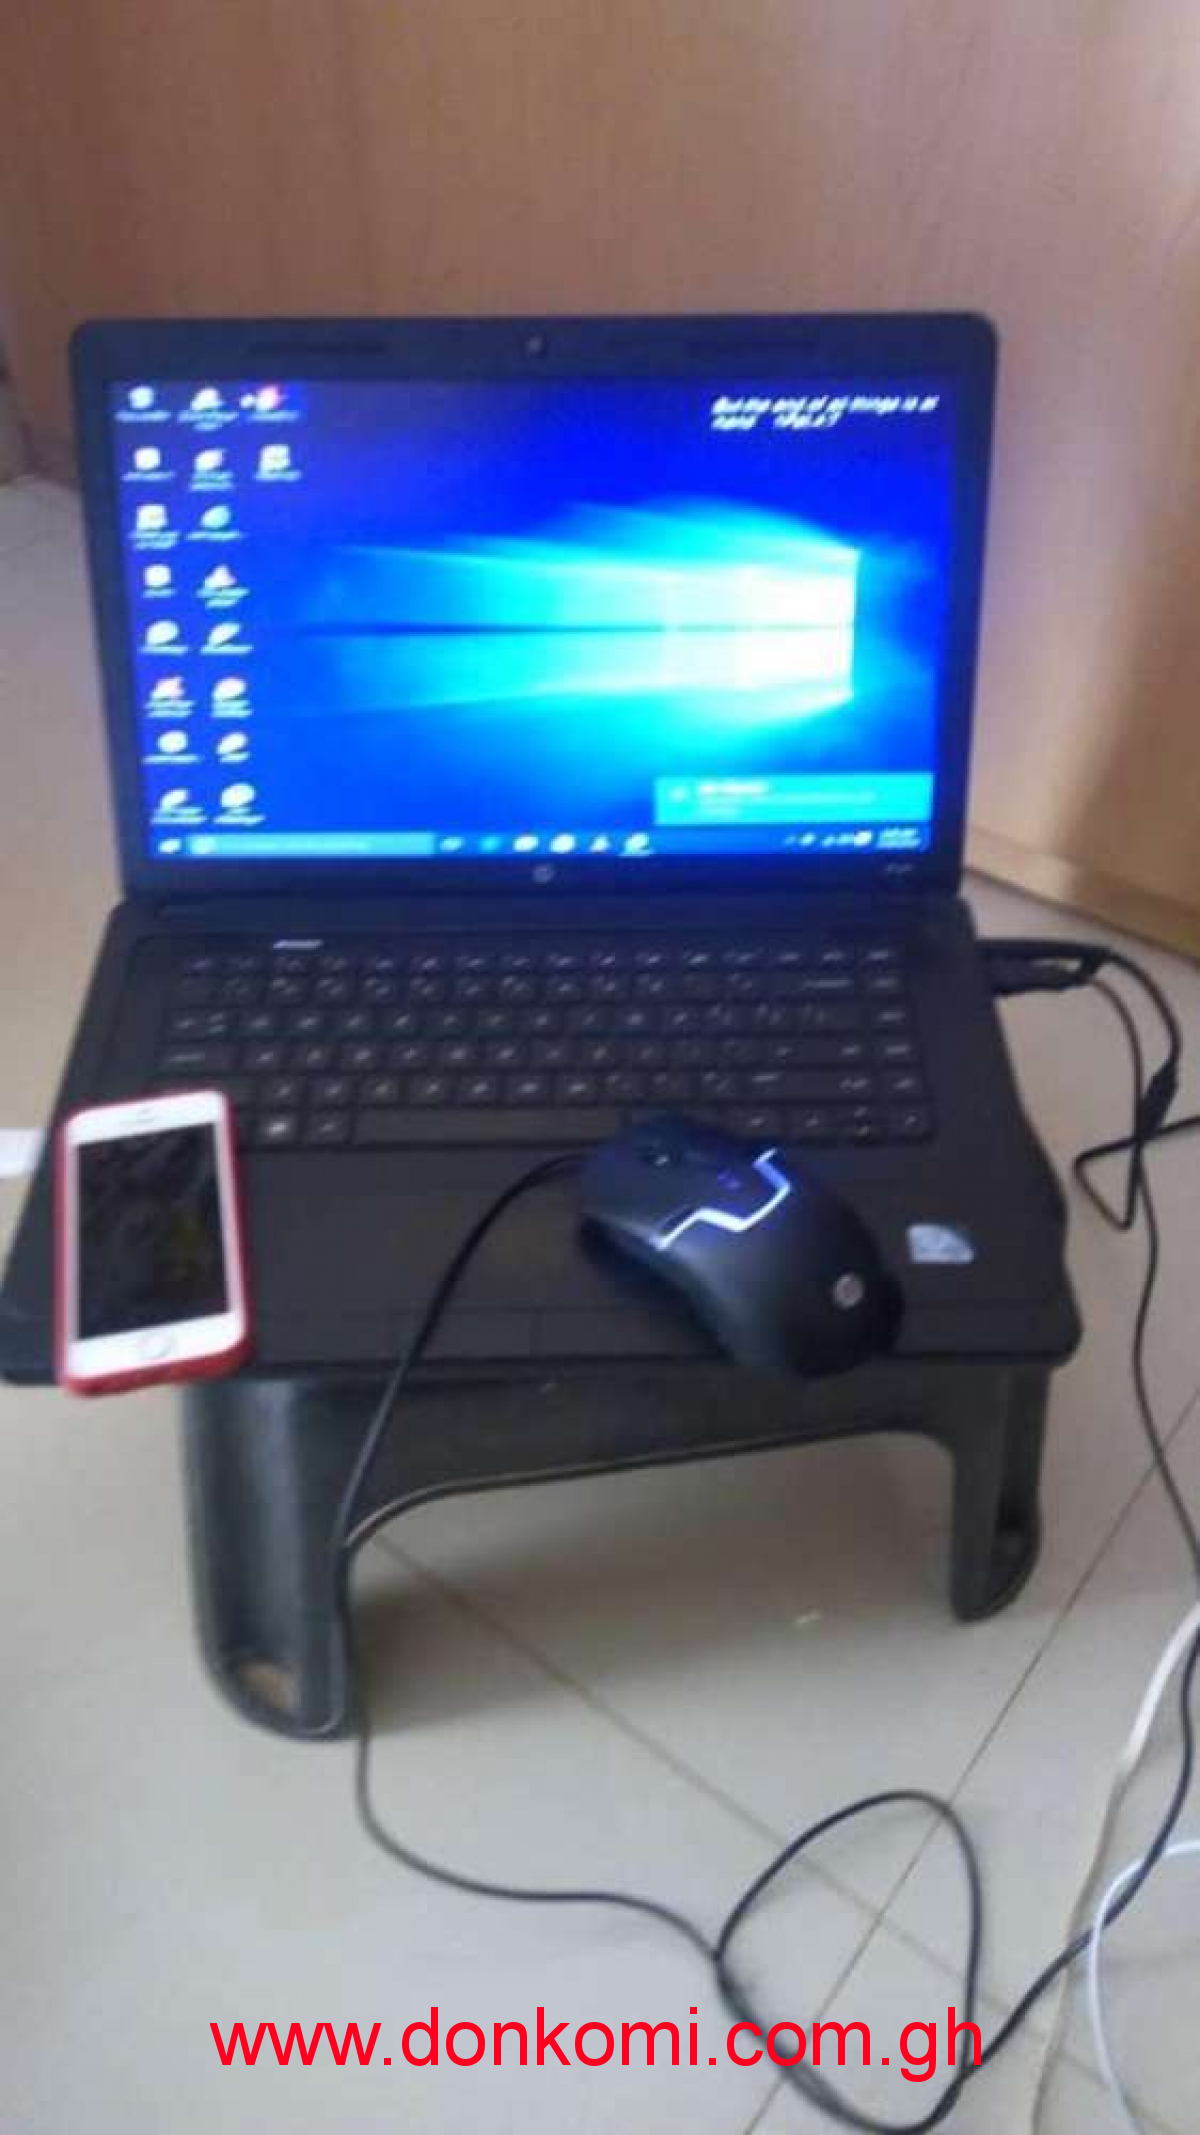 Am selling an iPhone with a laptop together